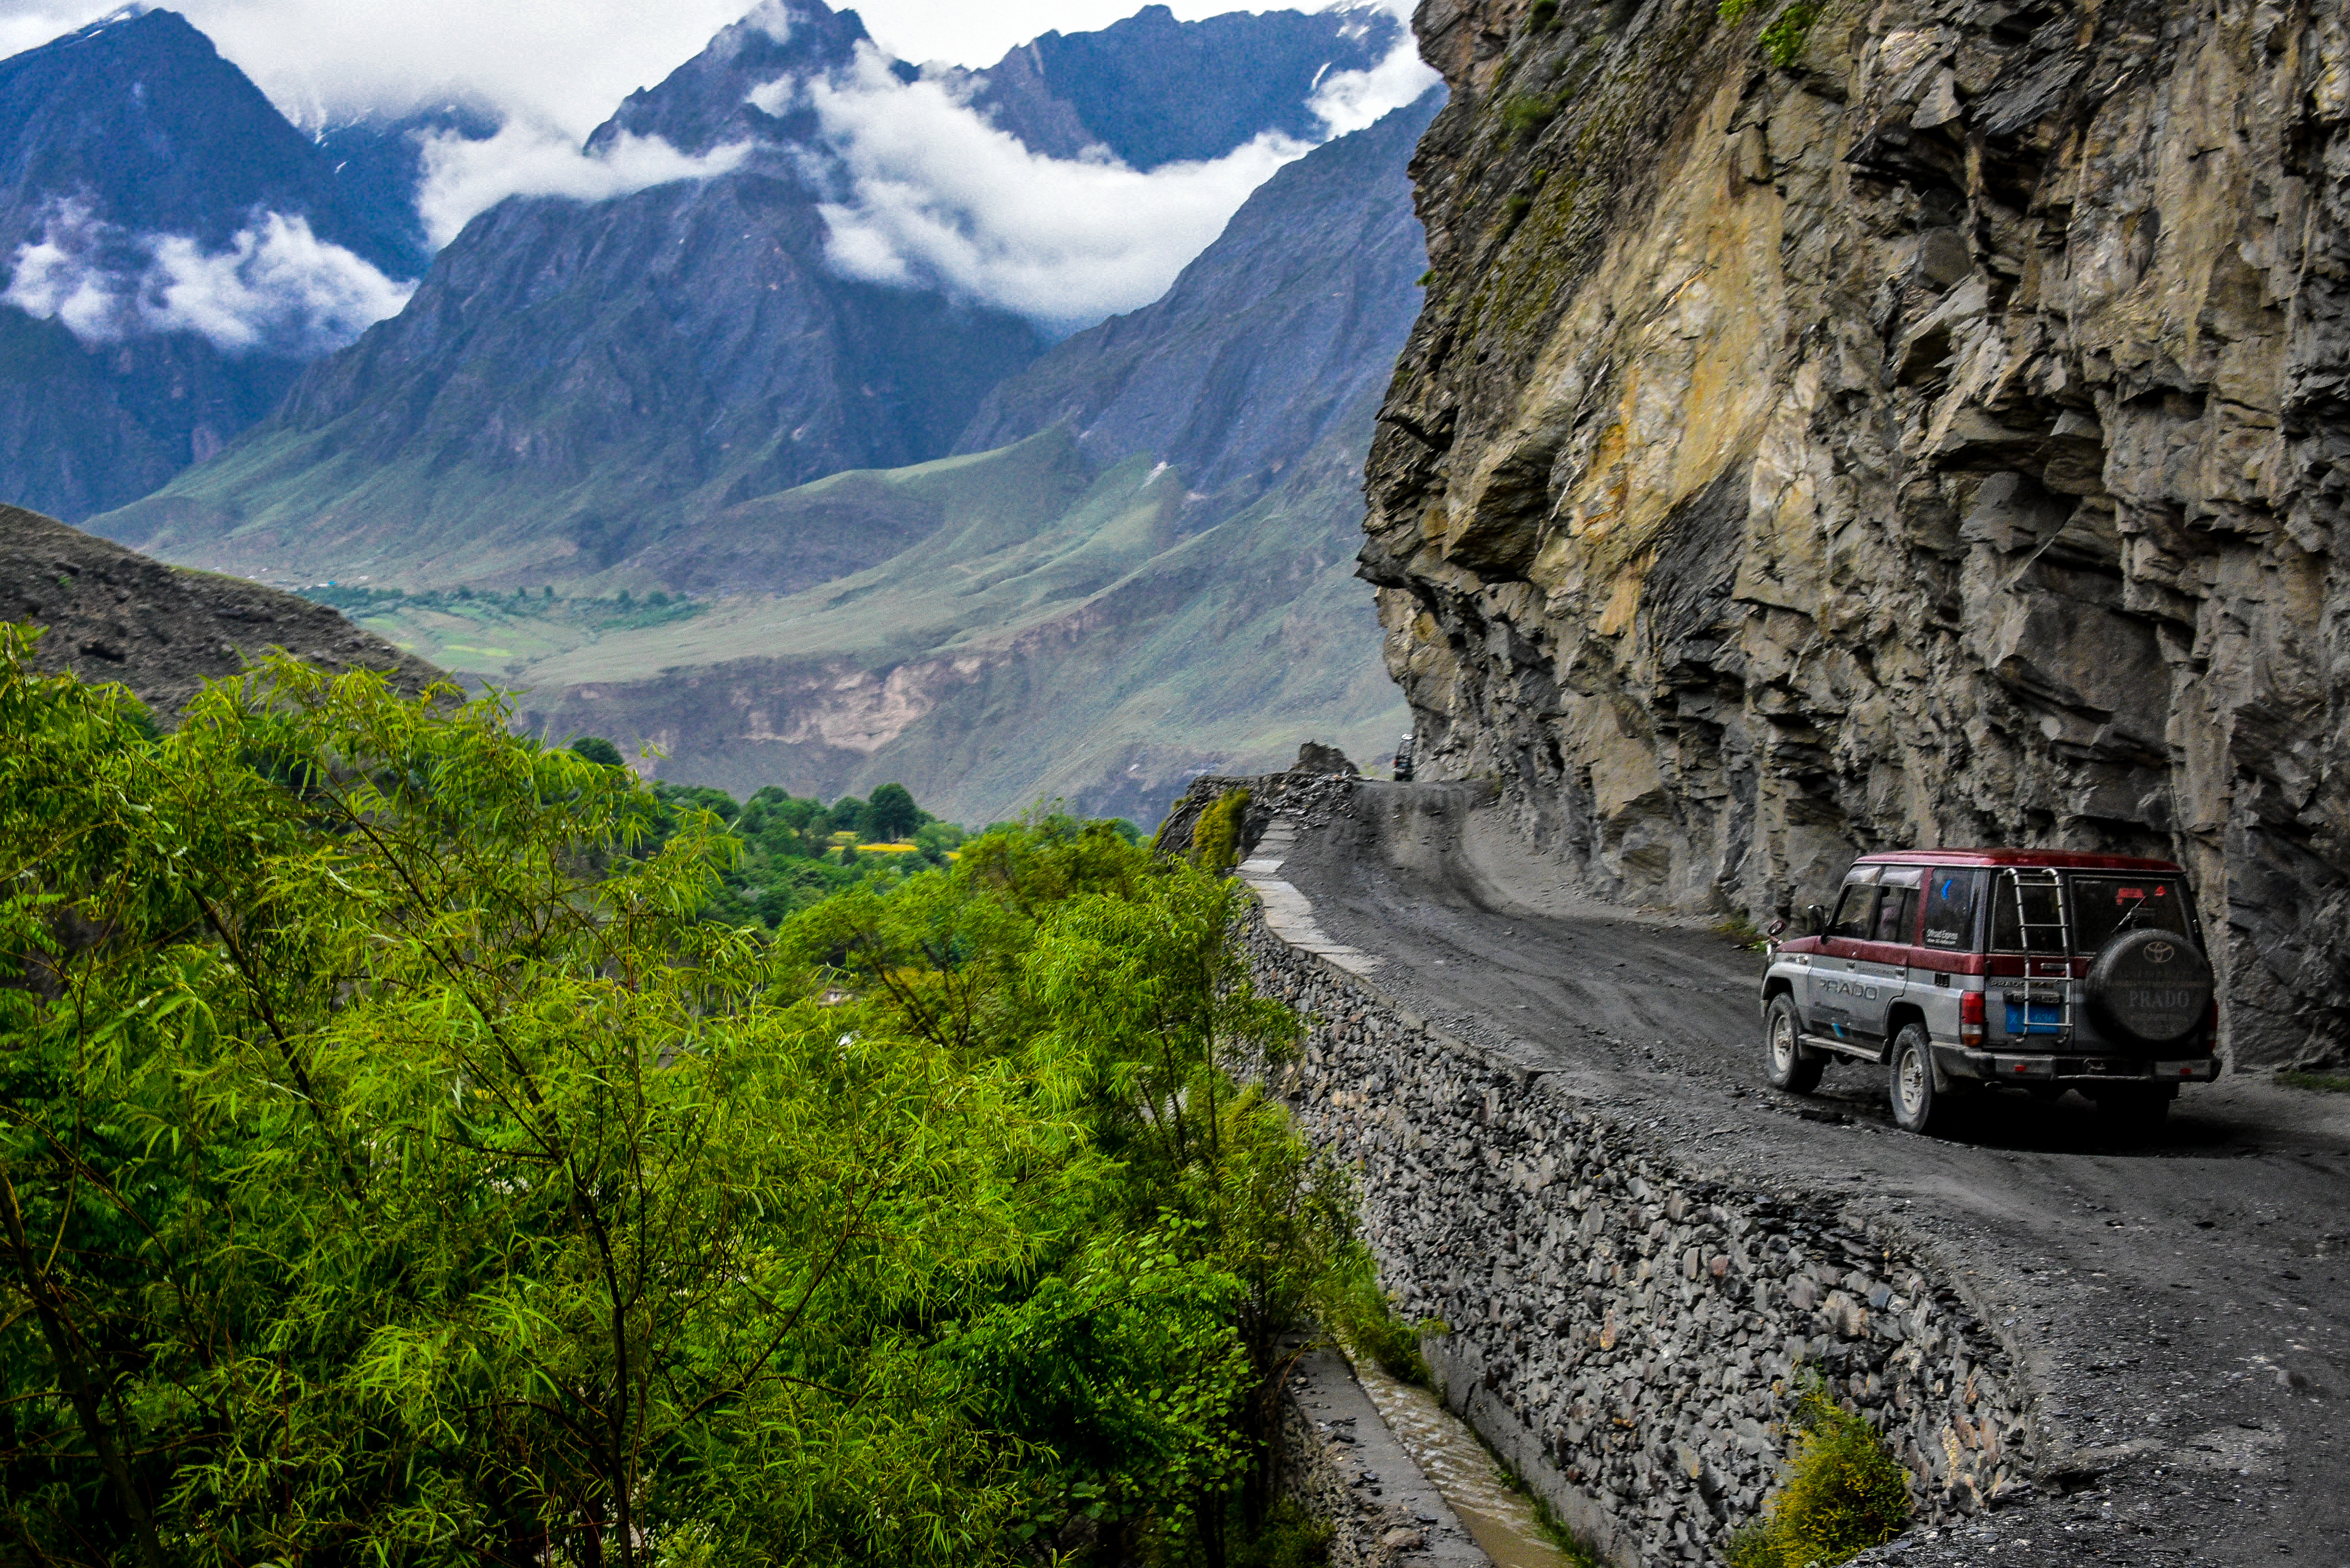 On the way to Kalash Valley via windy and rocky unsealed road.